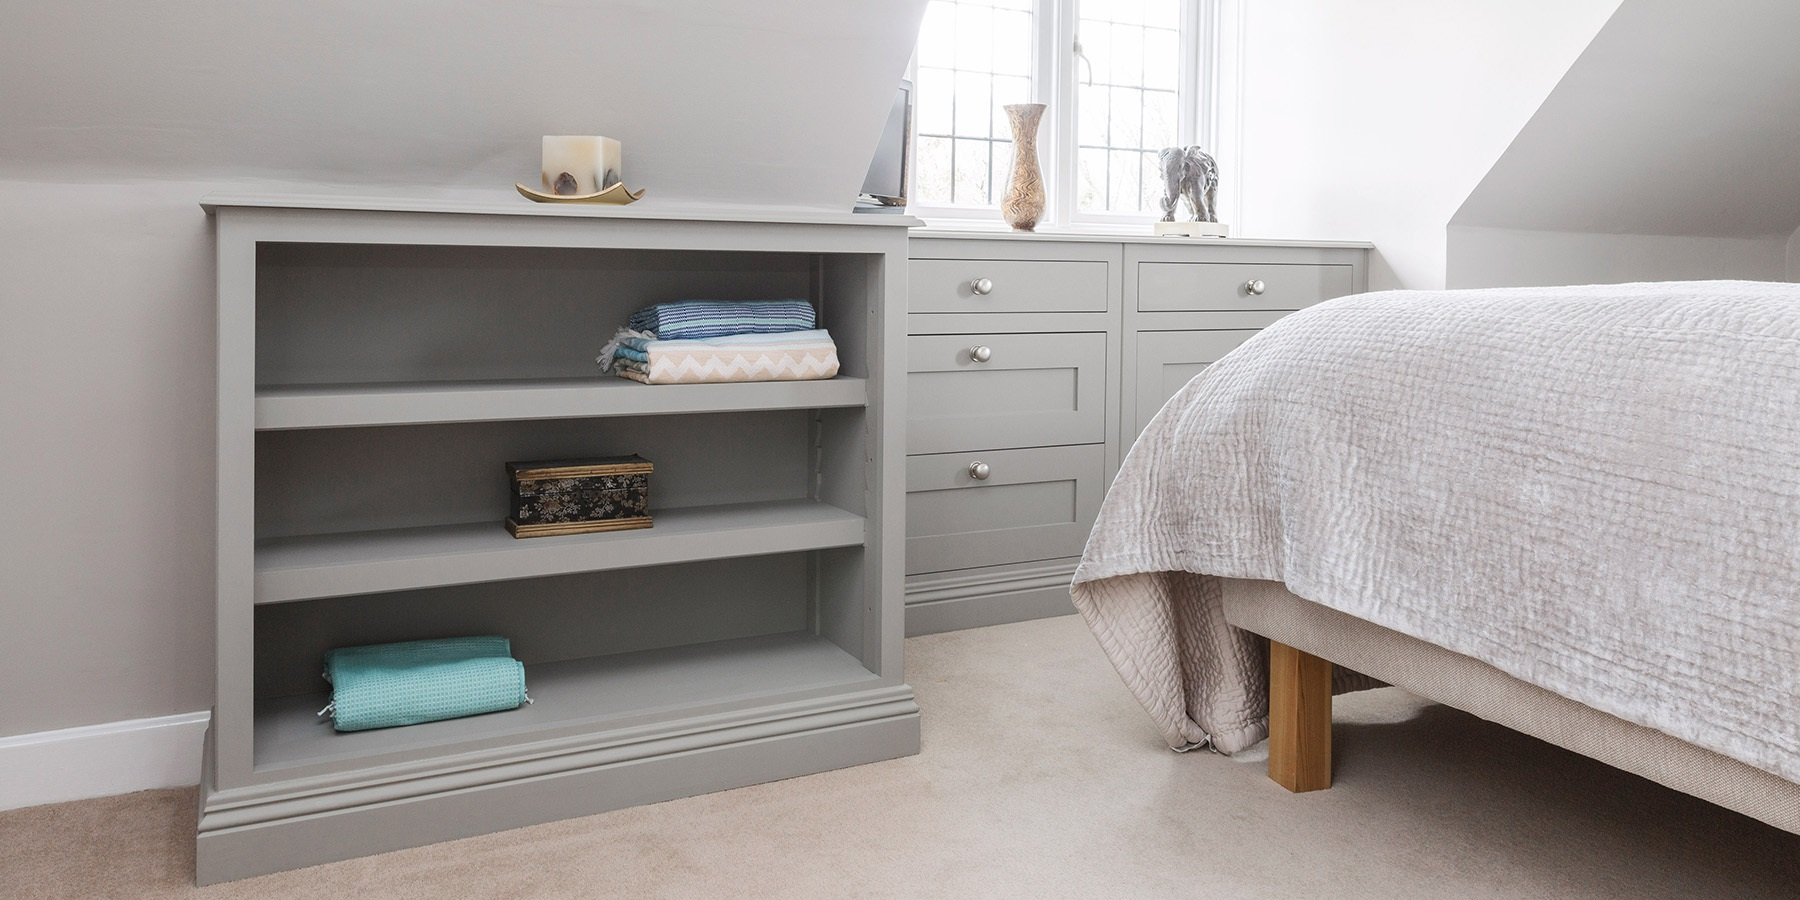 Bespoke Storage Solutions and Interiors - Burlanes create bespoke, handmade furniture and interiors for all rooms in your home